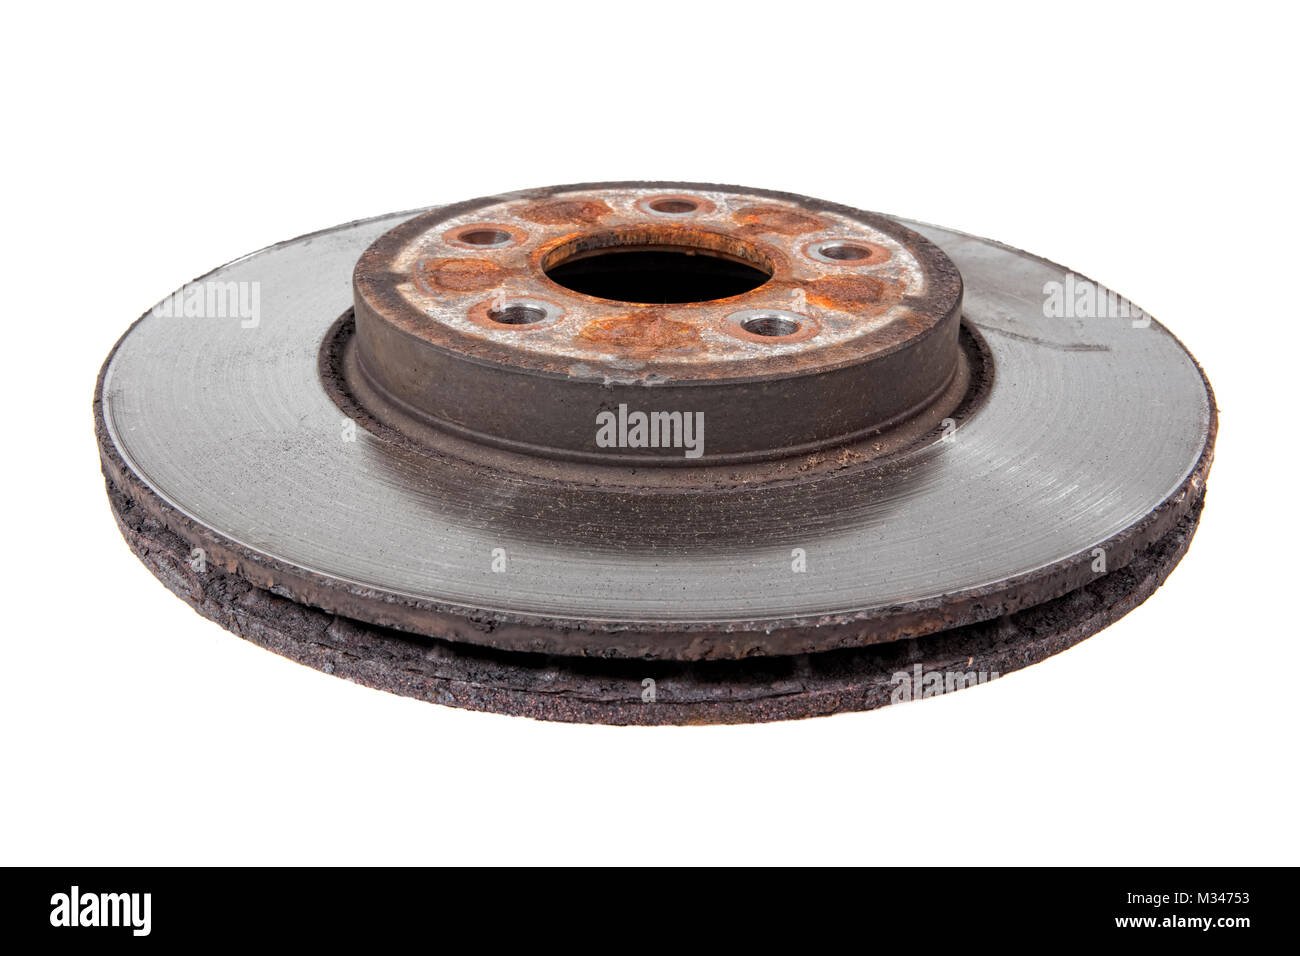 Close-up of an old disc brake on a car - Stock Image